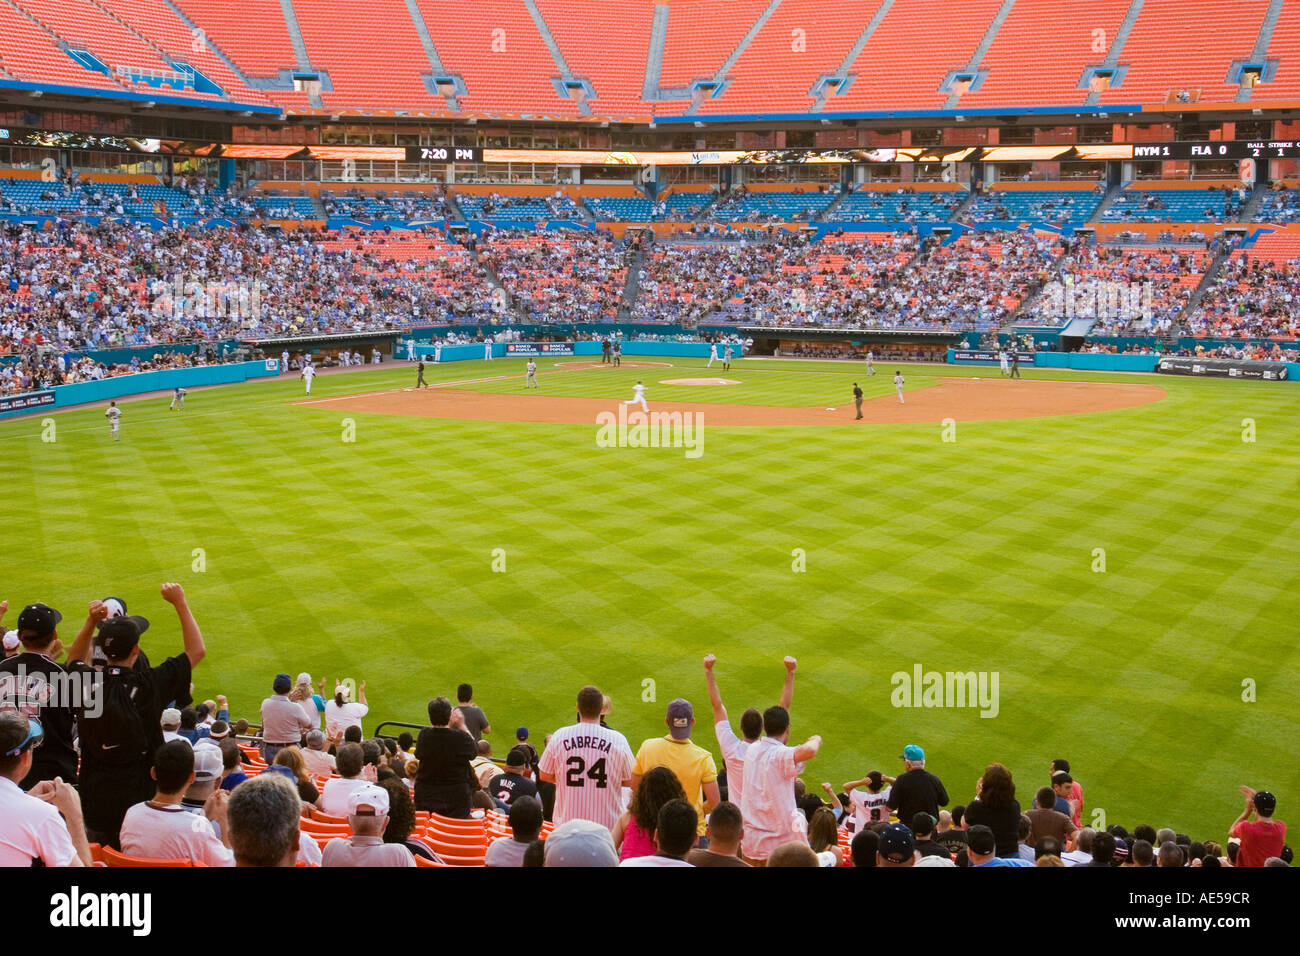 Crowd in the outfield stands at Dolphin Stadium standing and cheering their team - Stock Image